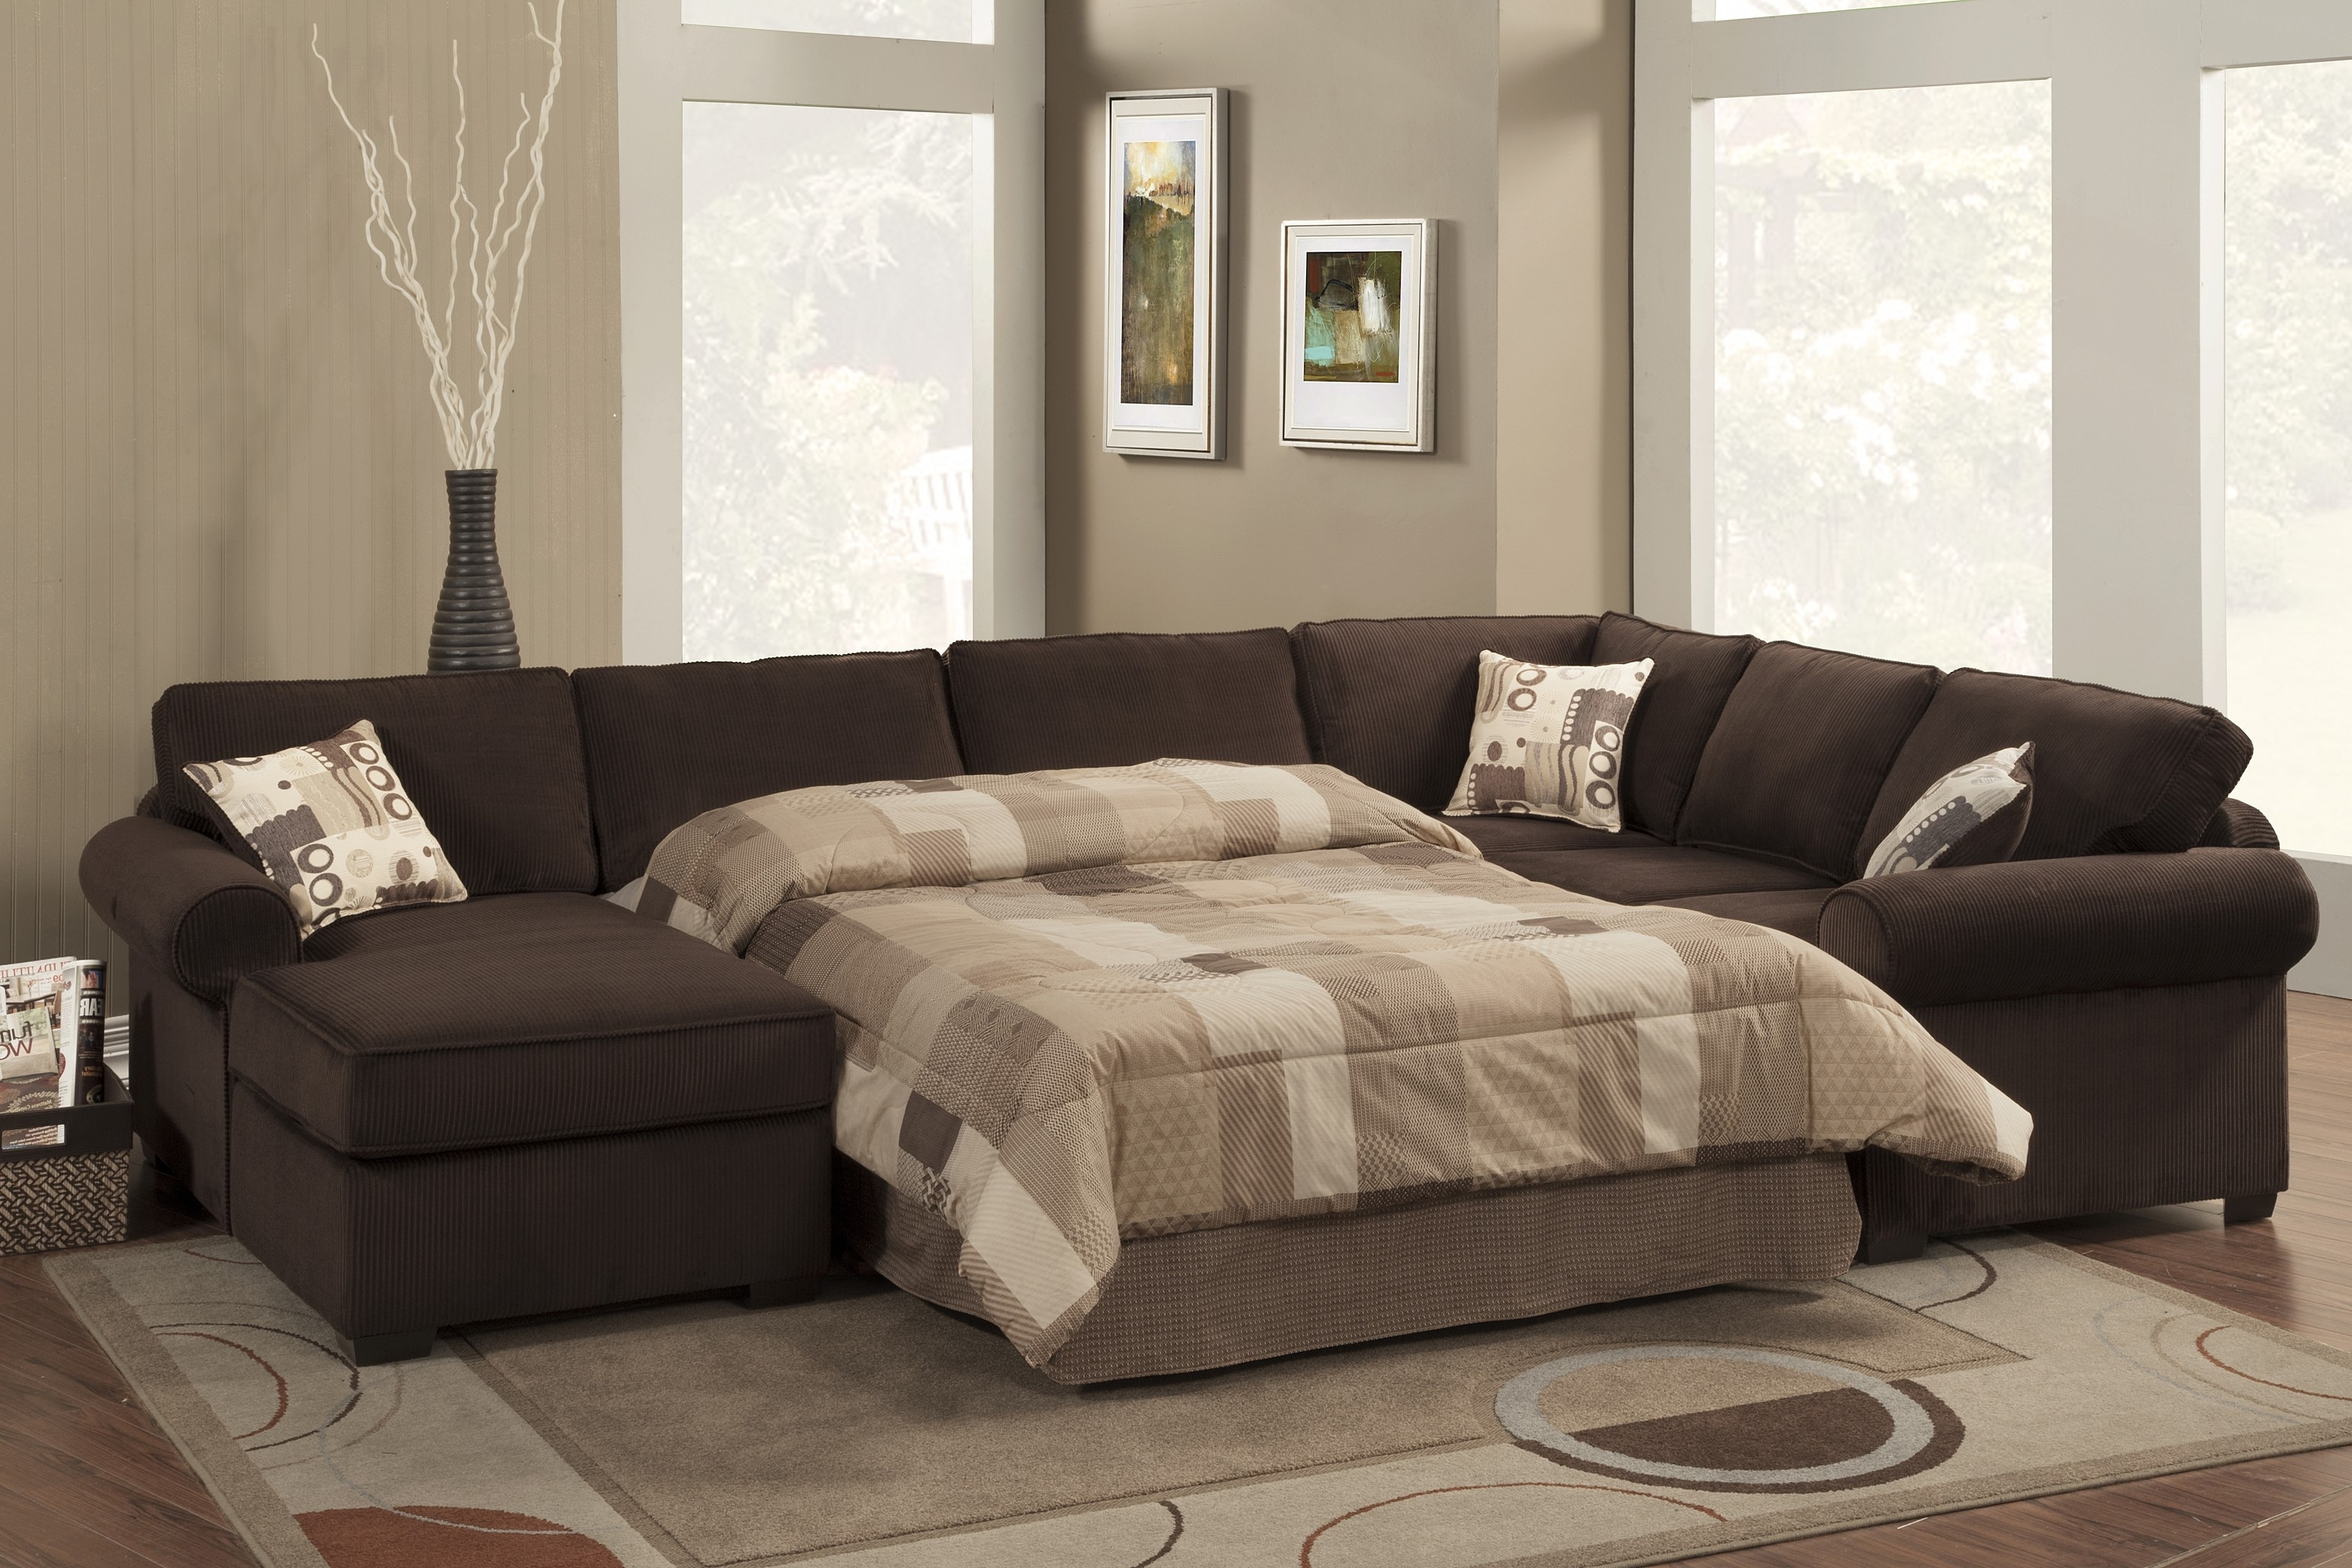 Astounding U Shaped Sectional Sofa With Chaise 12 With Additional Within Well Liked U Shaped Sectionals With Chaise (View 11 of 15)